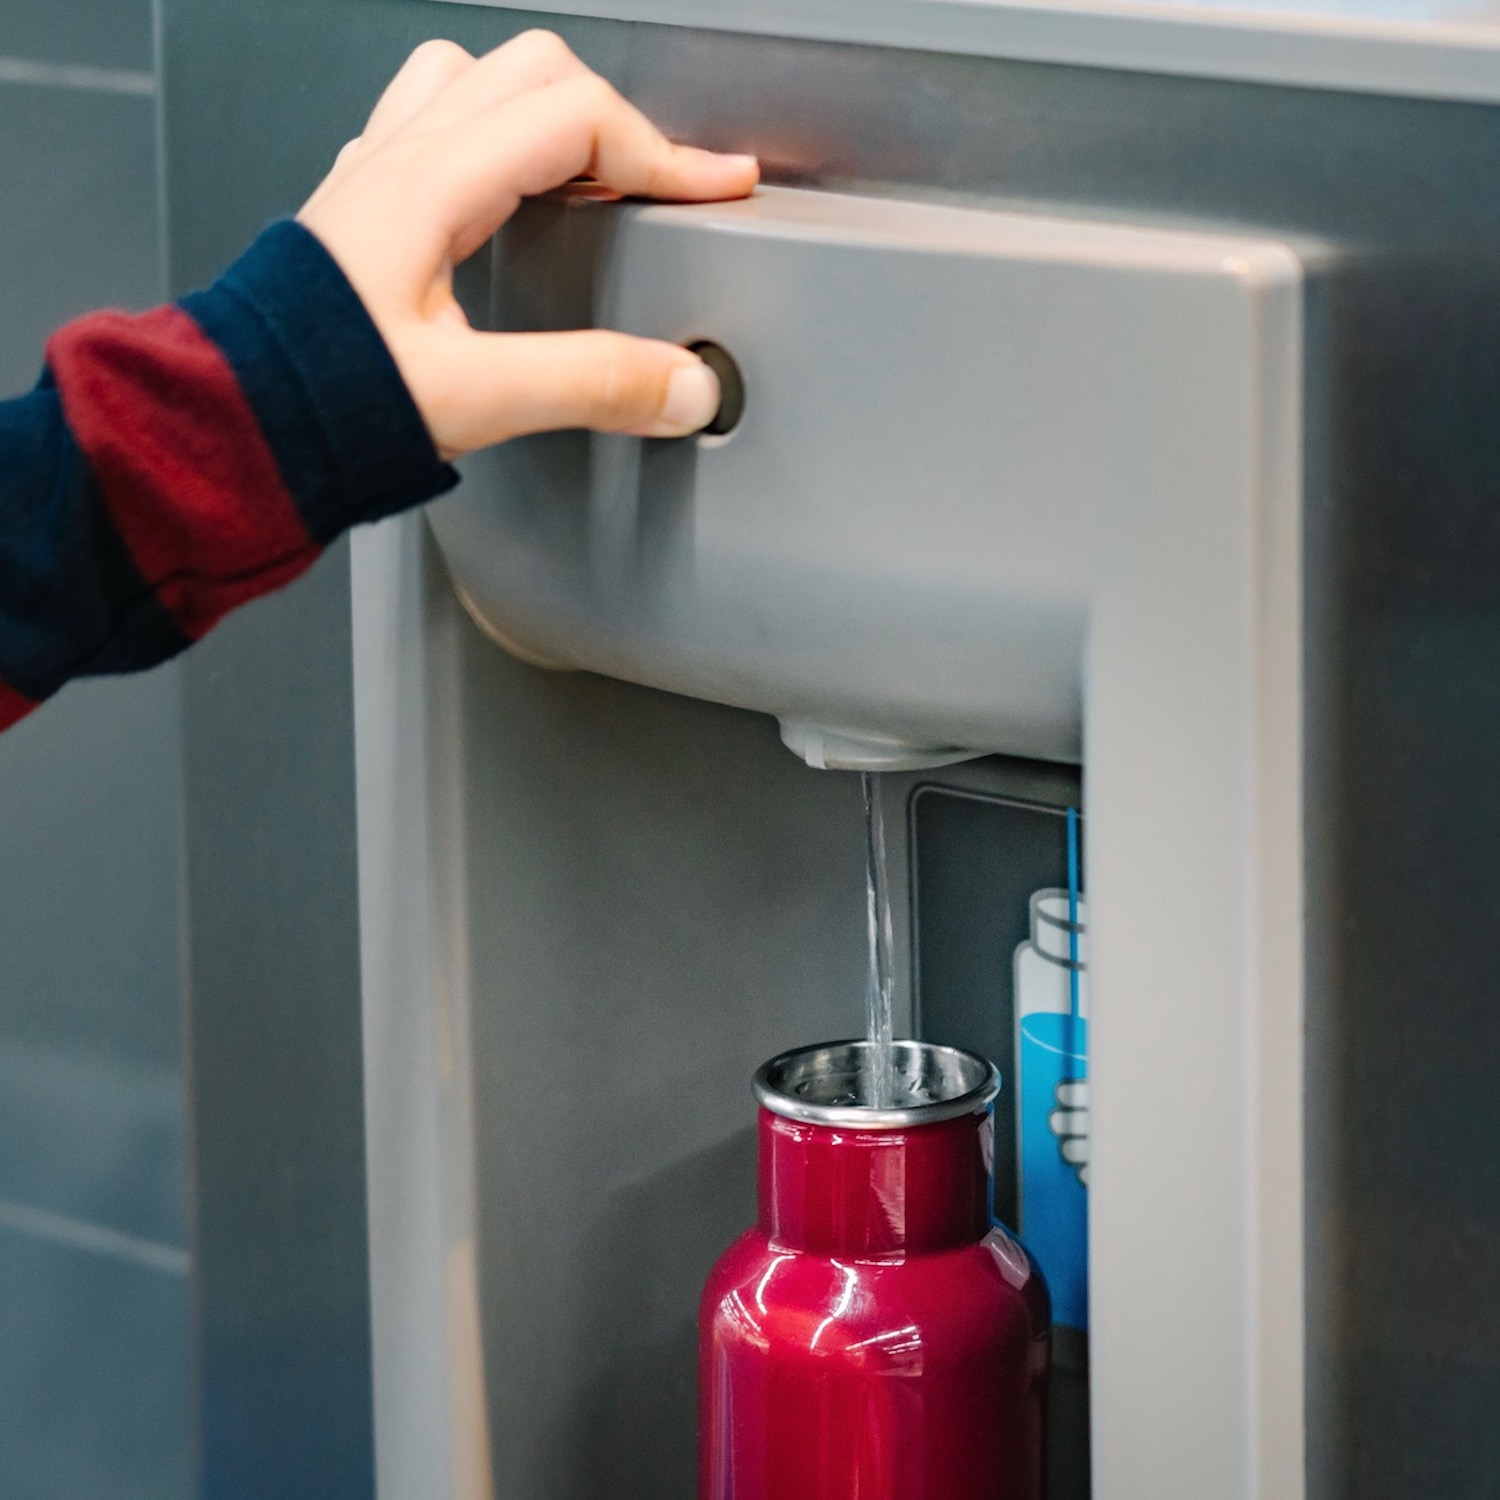 Hand of a traveler pressed the button of drinking water filling station at the Airport, fill up the reusable water bottle.  Eco friendly, Environmental awareness, No Plastic, Clean water, Zero waste.